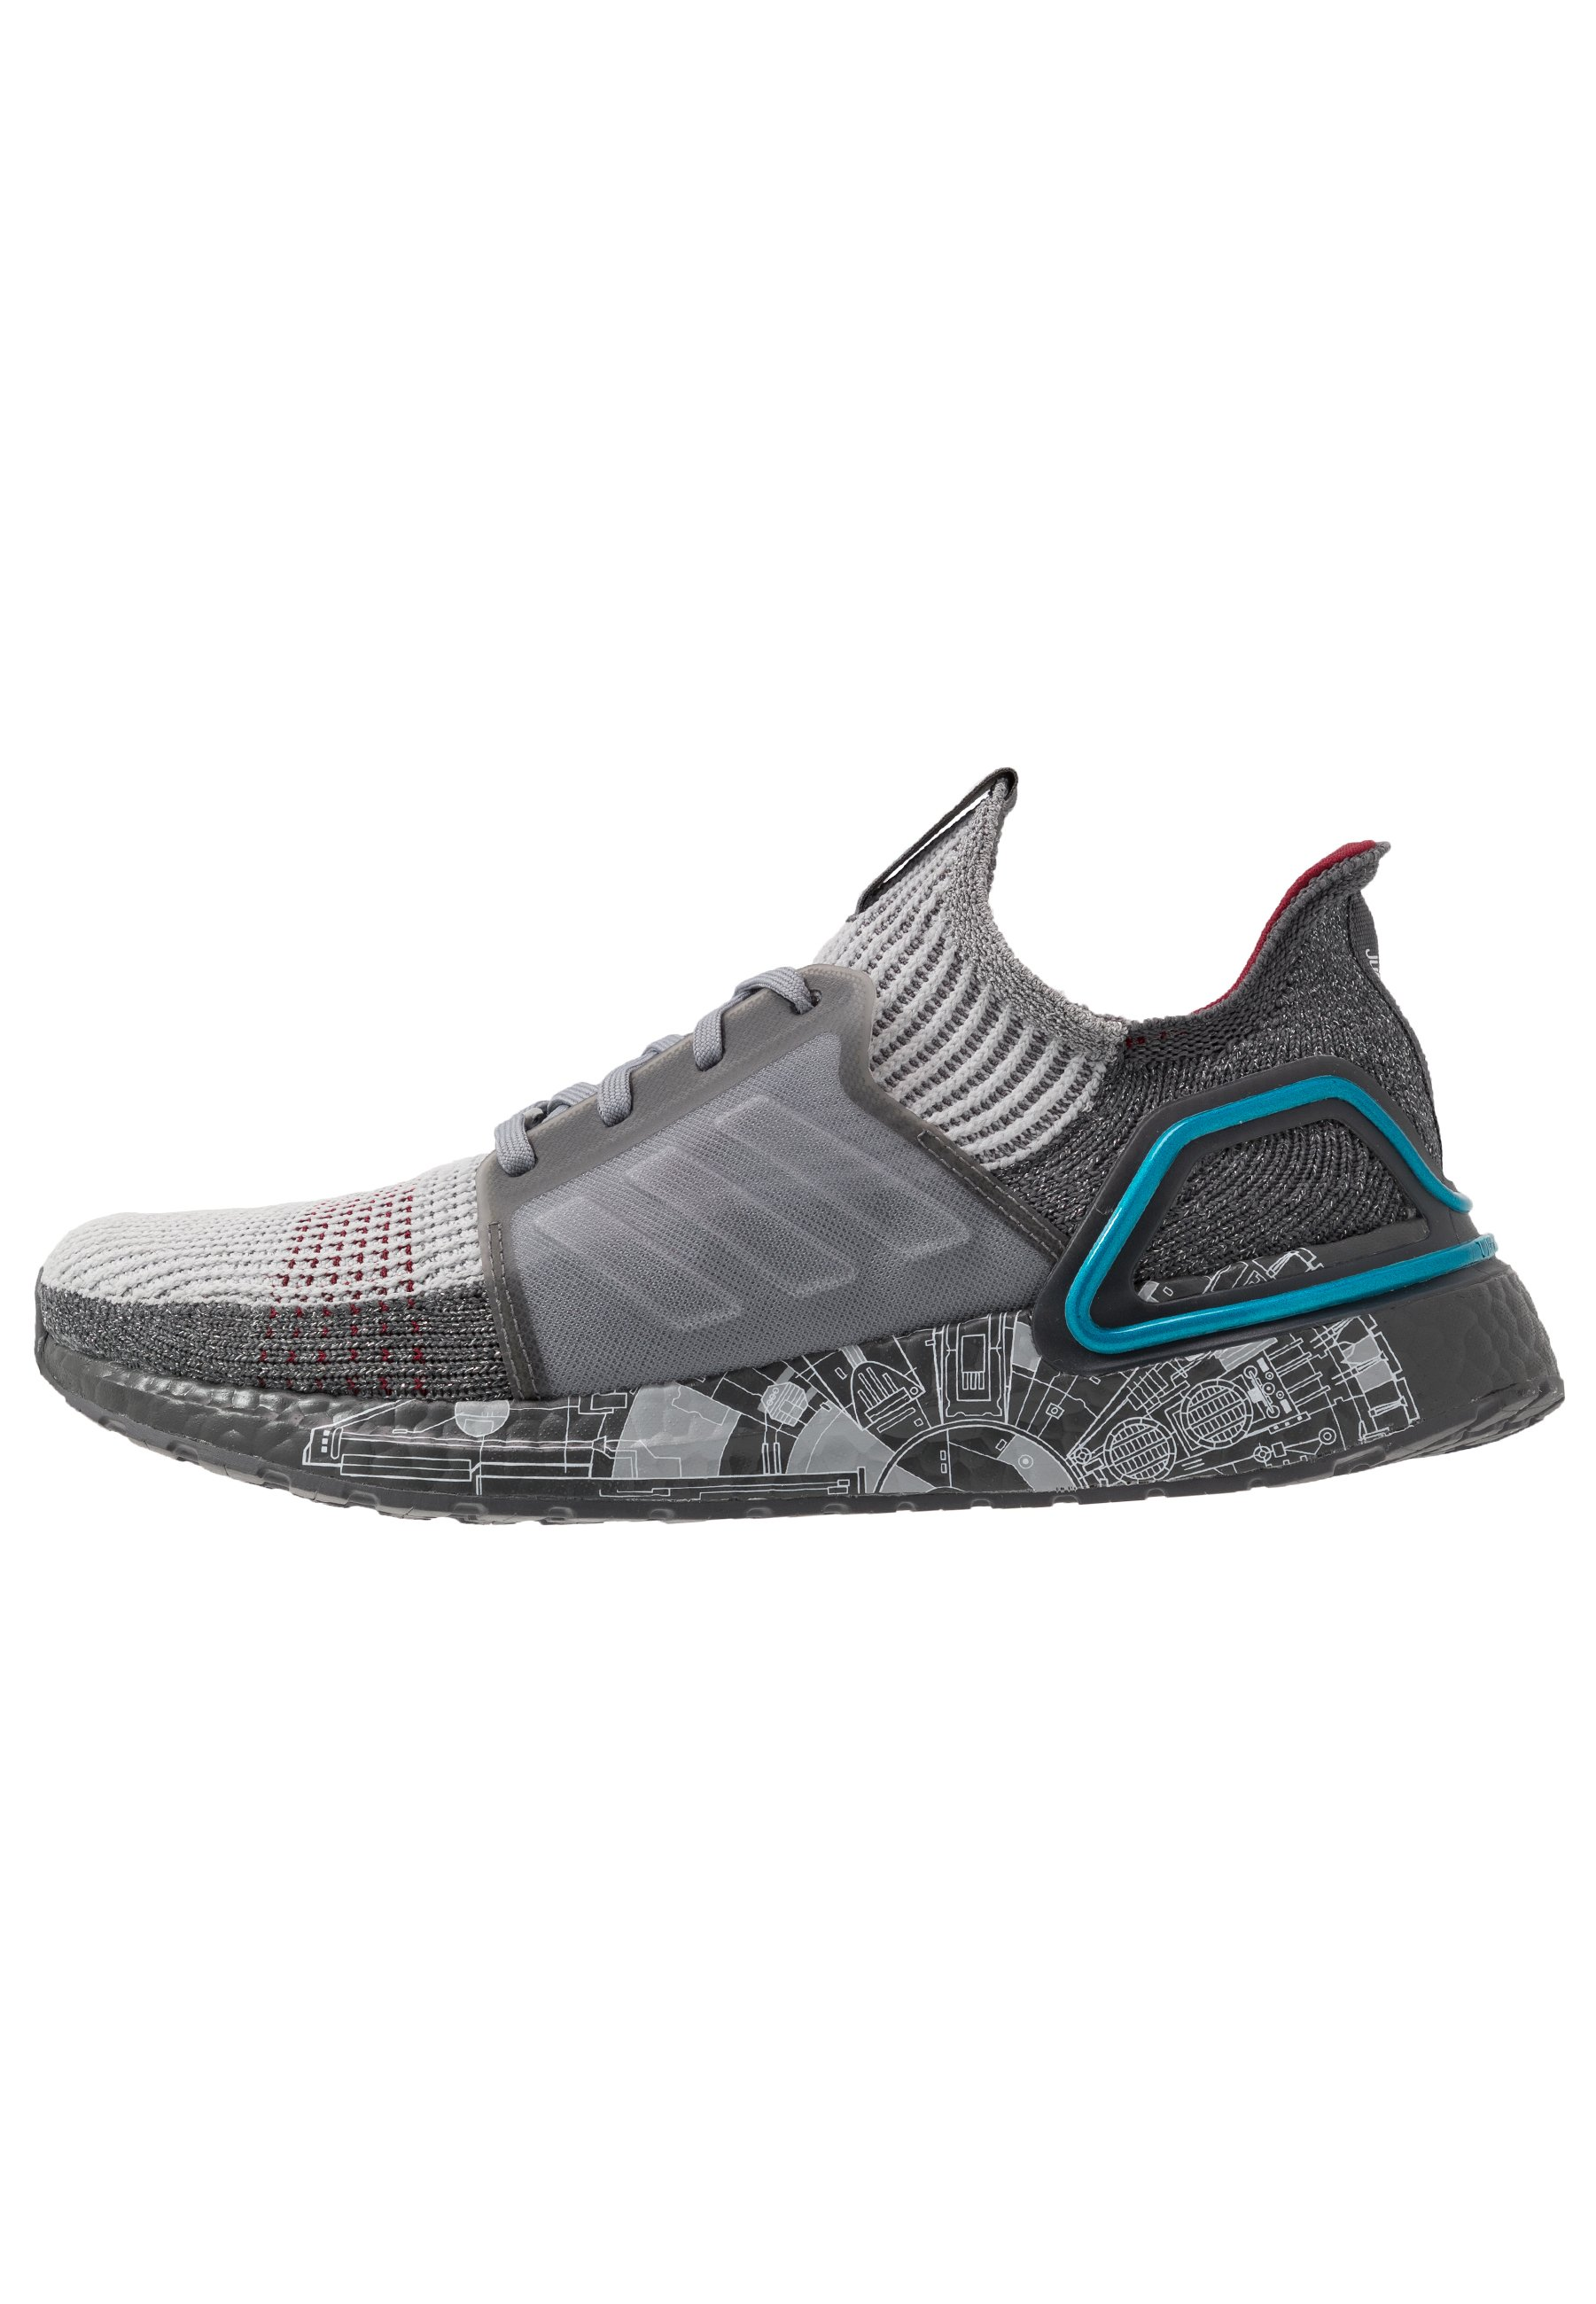 adidas Performance UB19 STAR WARS MILLENNIUM - Zapatillas de ...